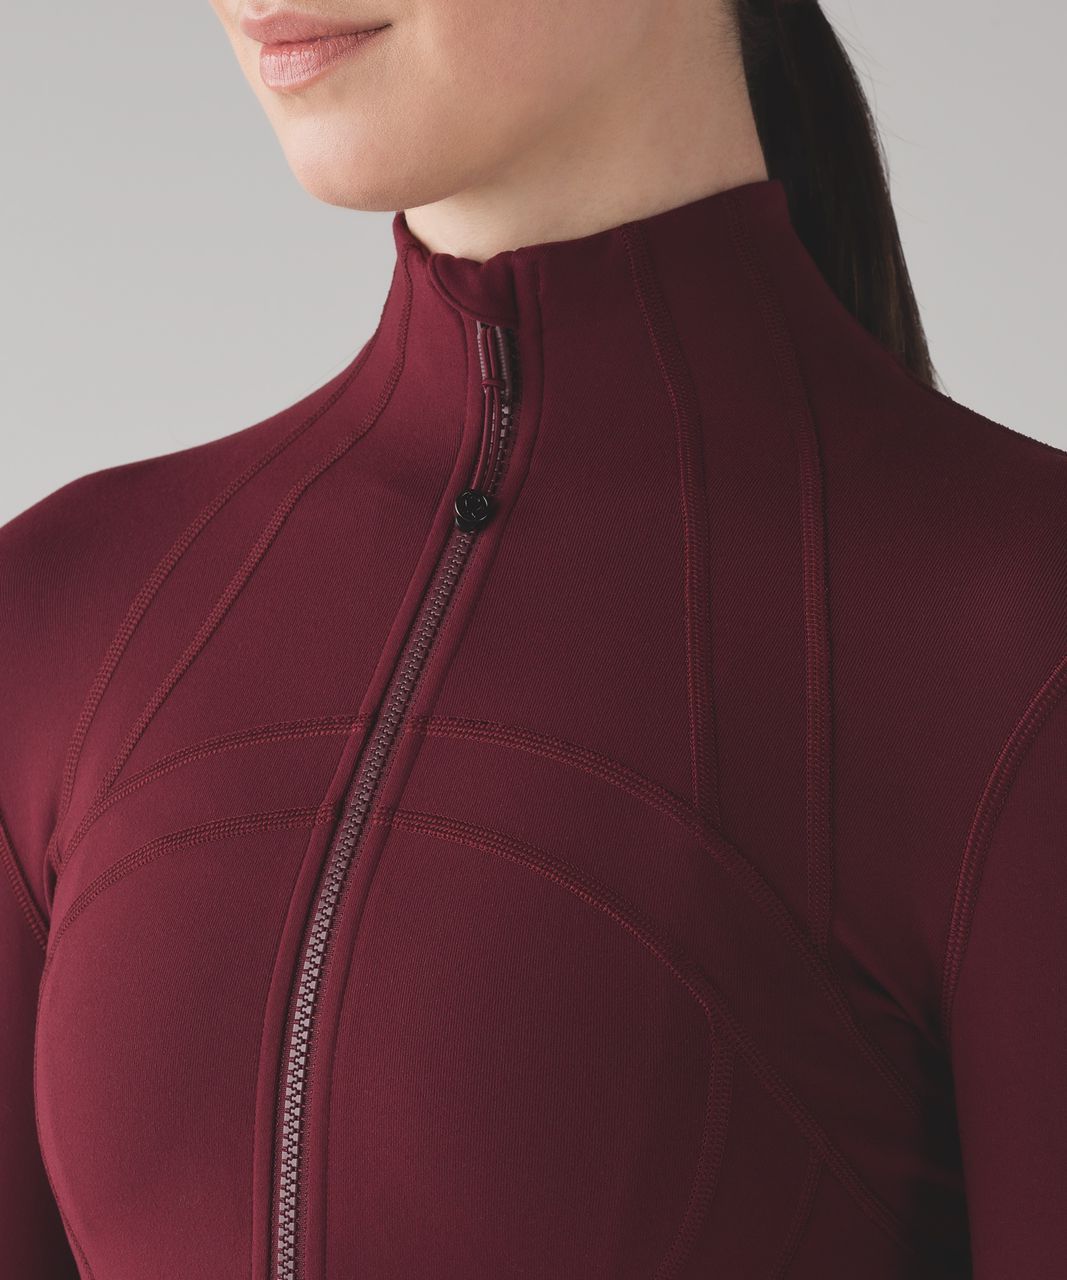 Lululemon Define Jacket - Deep Rouge